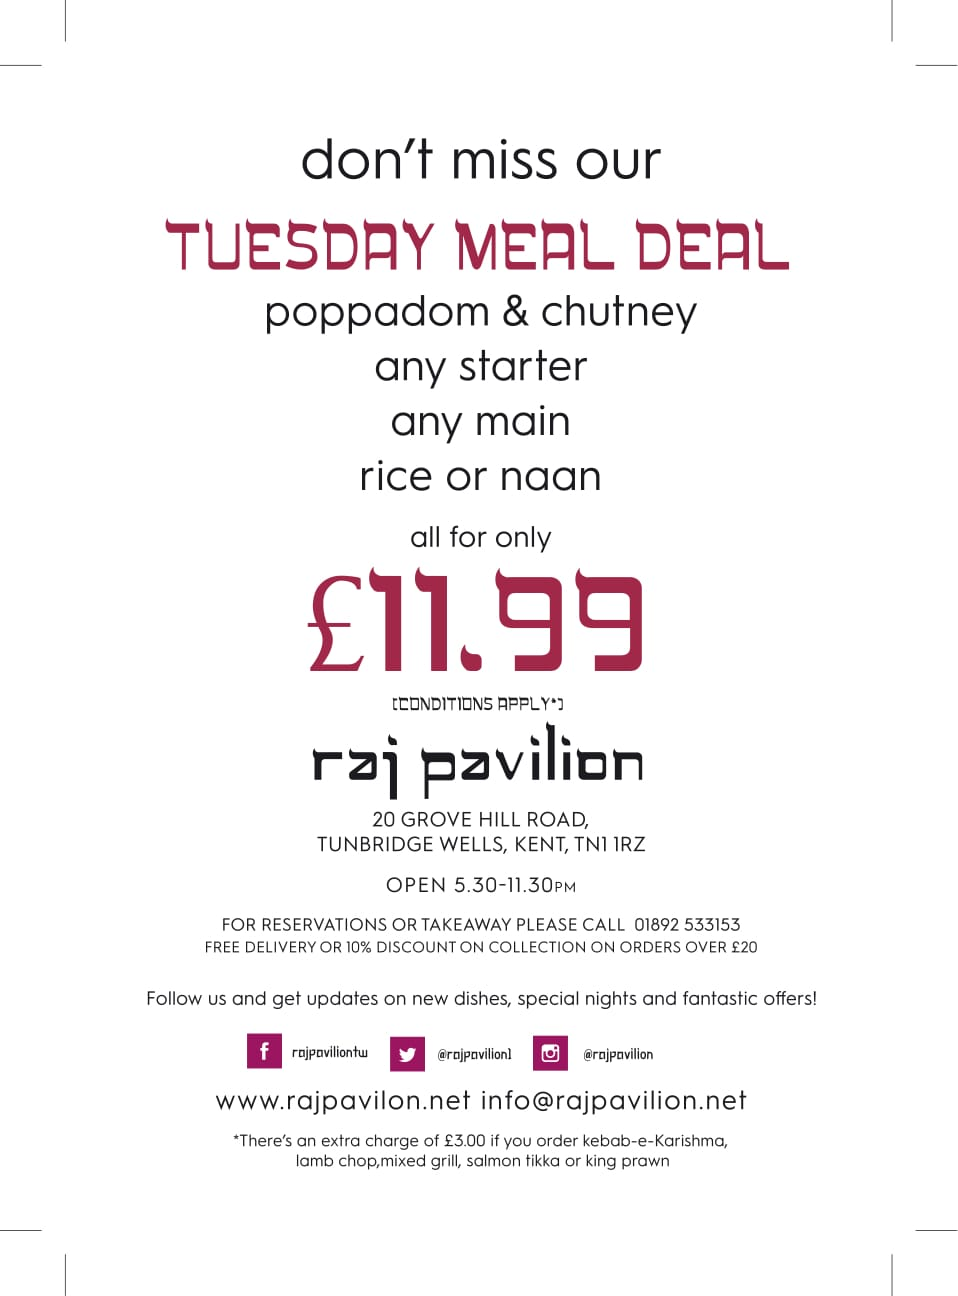 Tuesday All in for £11.99